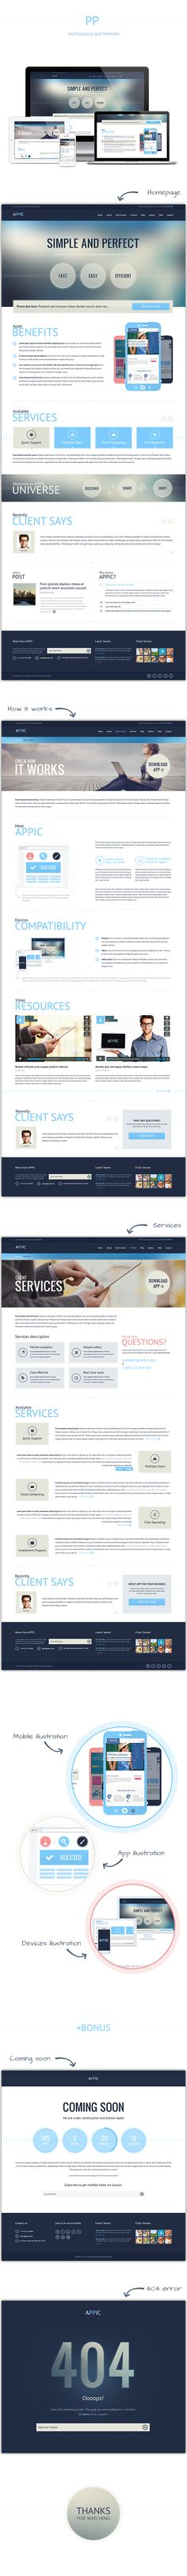 Appic - business and technology website by Olia Gozha, via Behance #webdesign